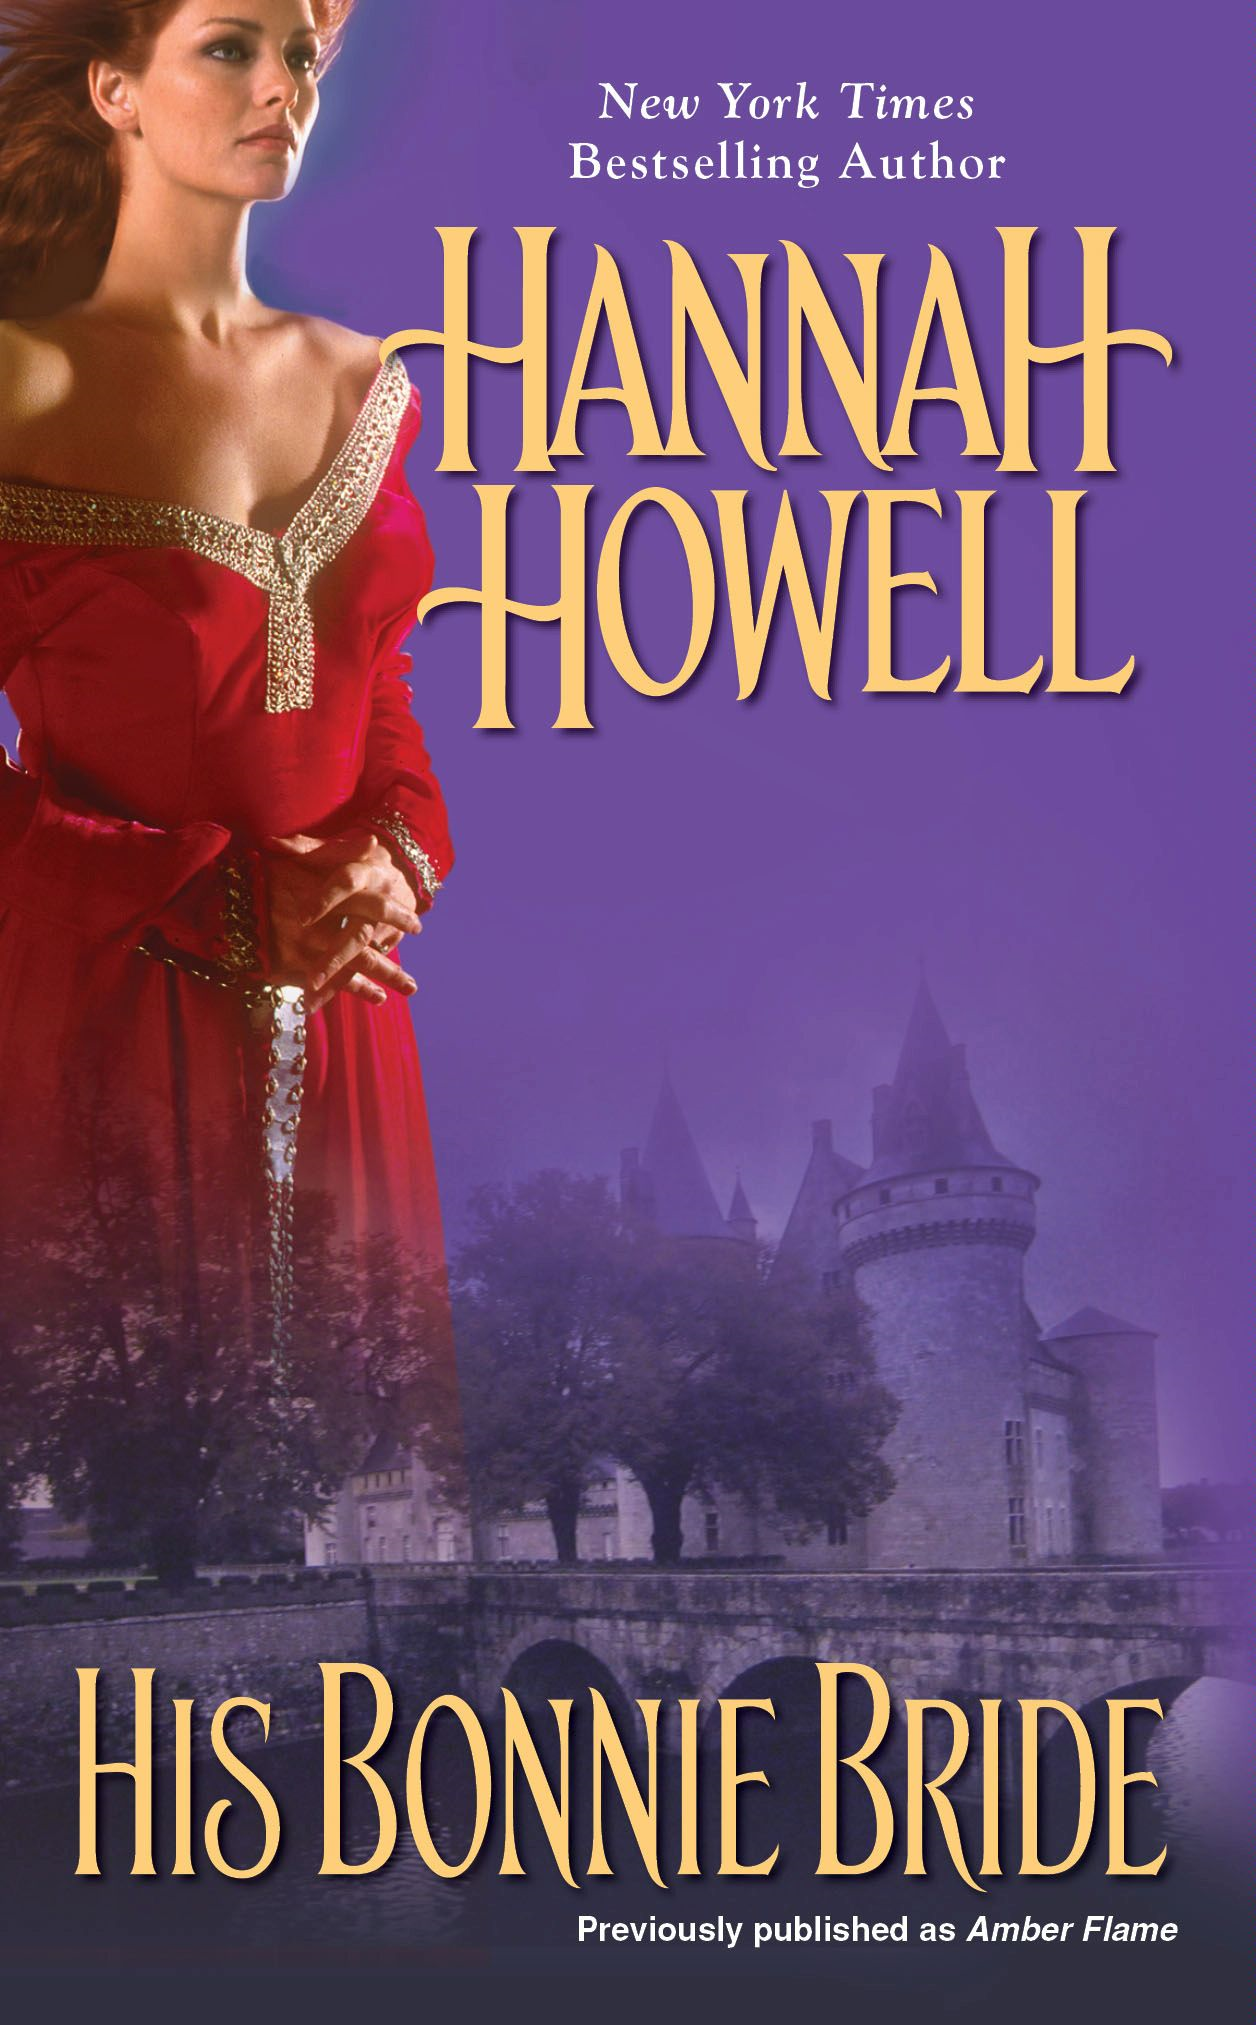 His Bonnie Bride By: Hannah Howell